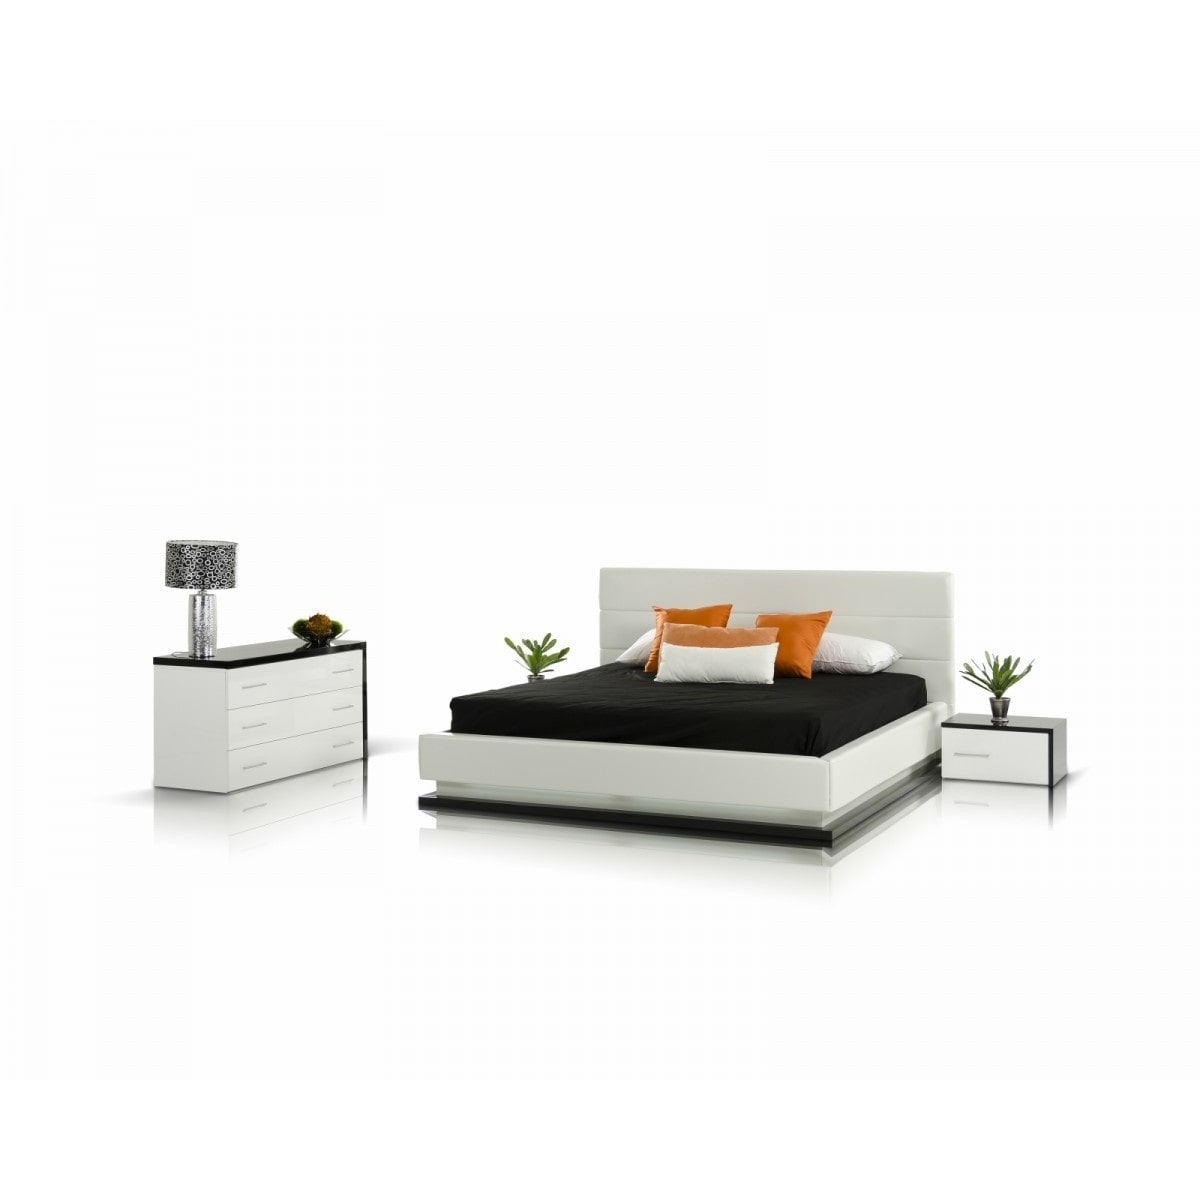 Beau VIG Furniture Inc. Modrest Infinity   Contemporary Black U0026 White Bedroom Set